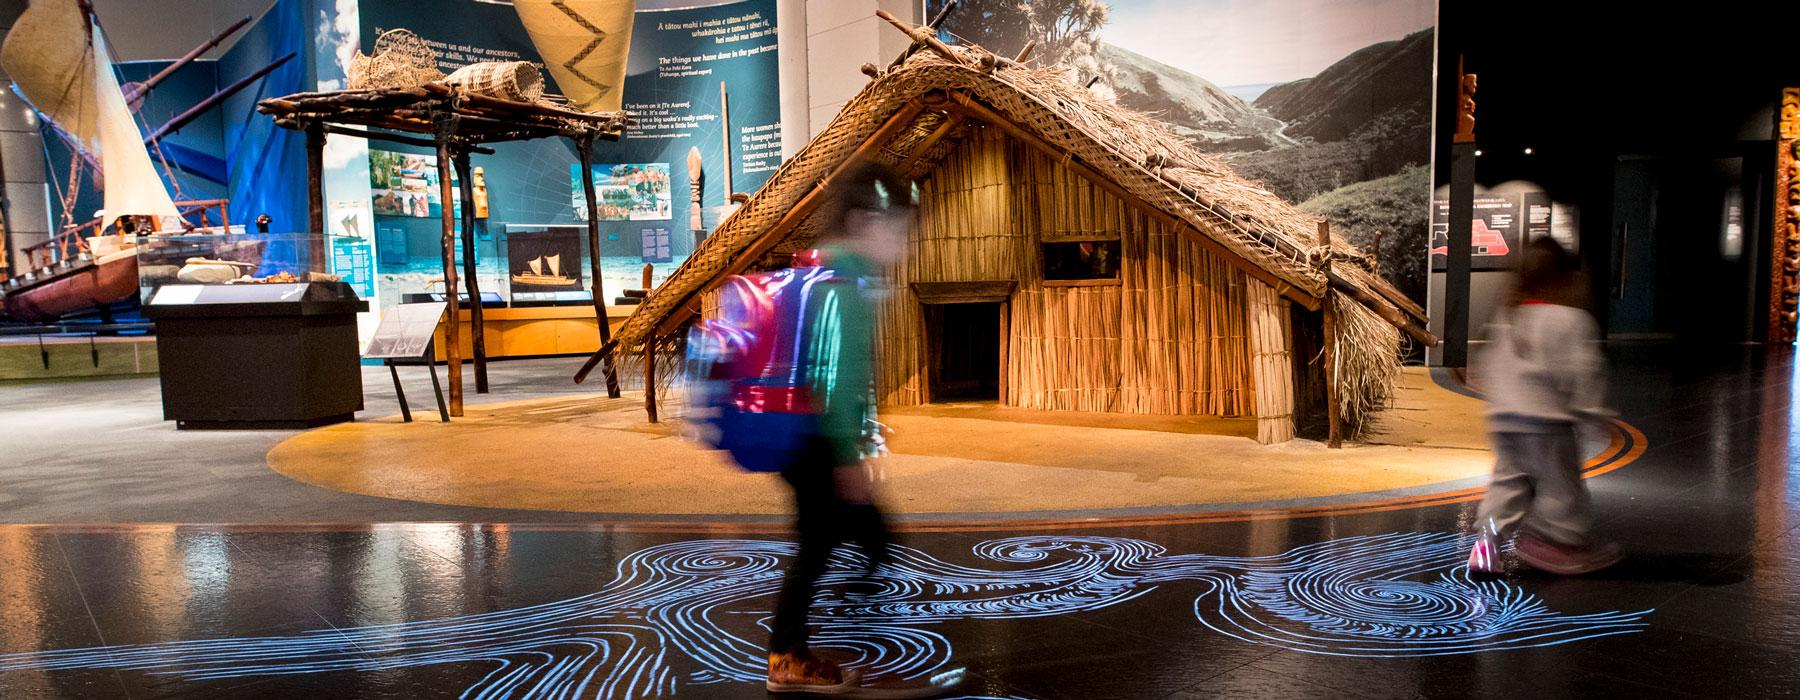 Inside the Mana Whenua exhibition